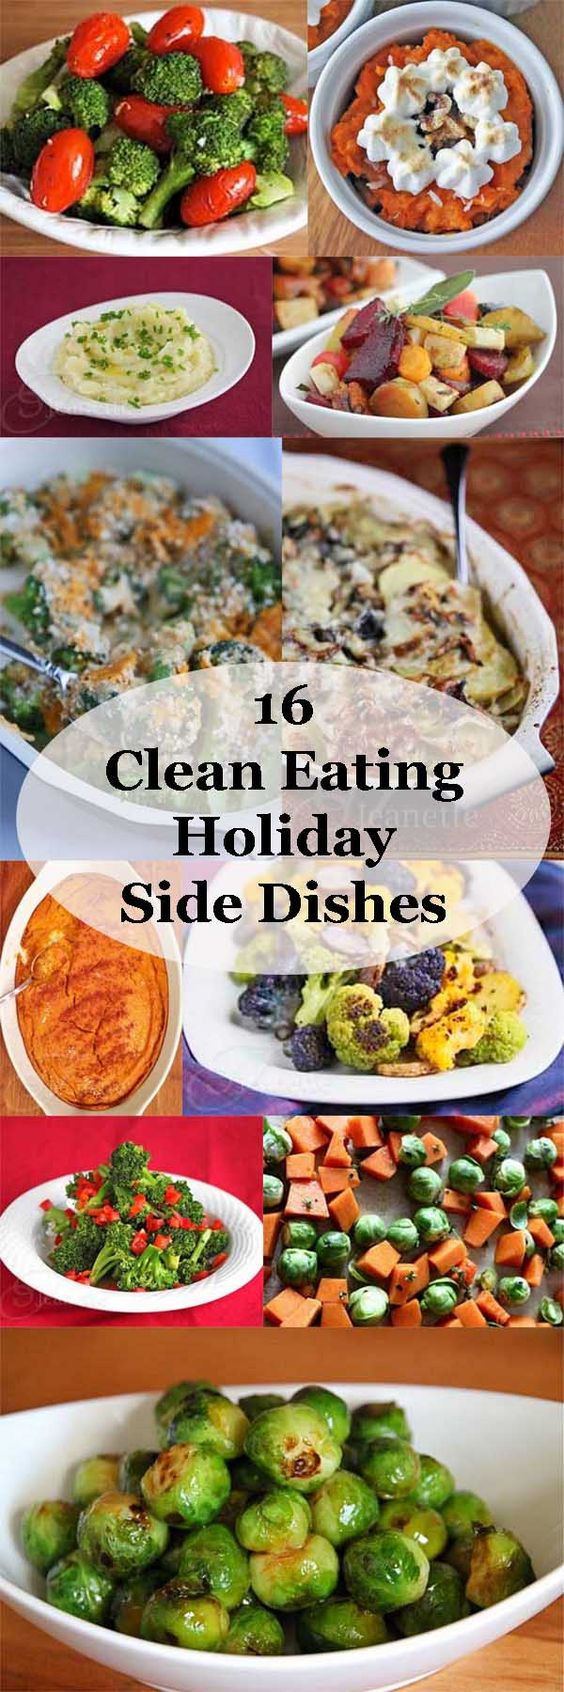 Christmas Side Dishes Pinterest  16 Clean Eating Holiday Side Dish Recipes